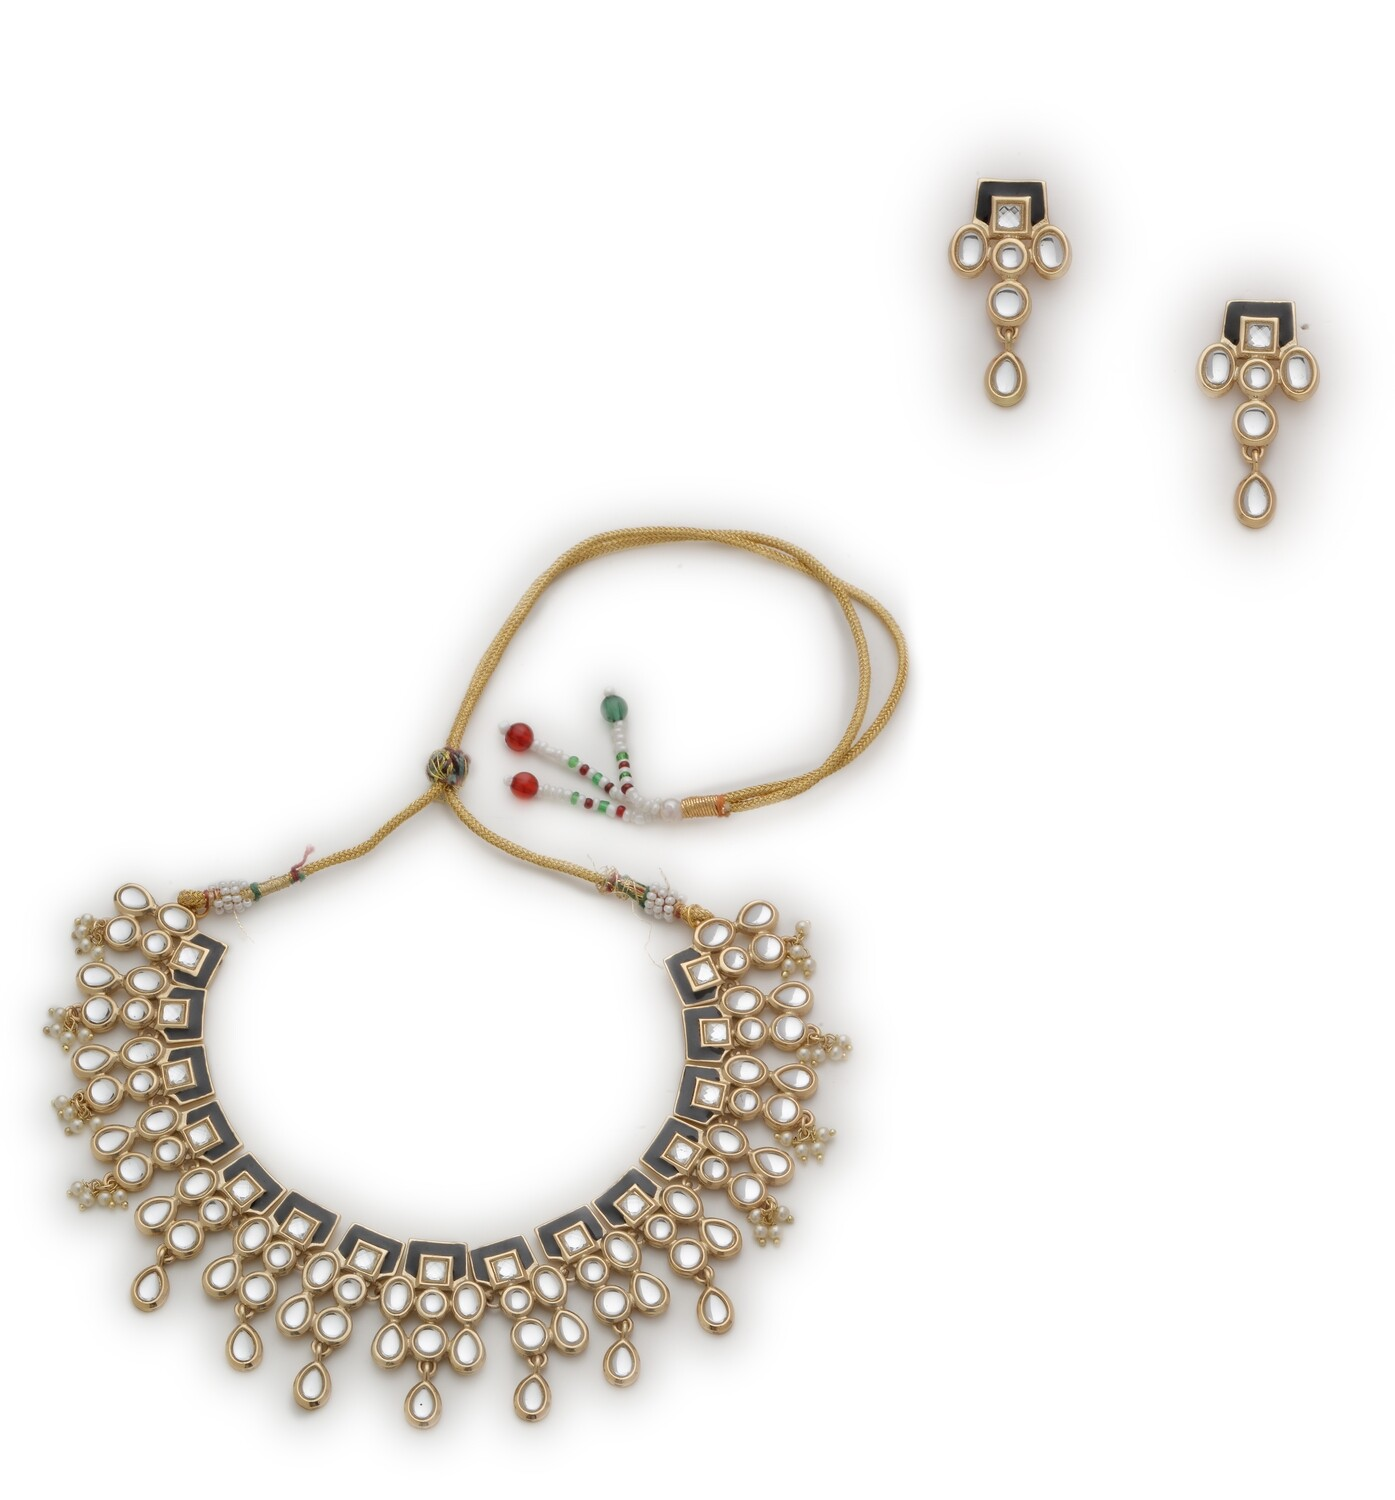 Estele Gold Plated Kundan Polki Jewelry / Necklace Set